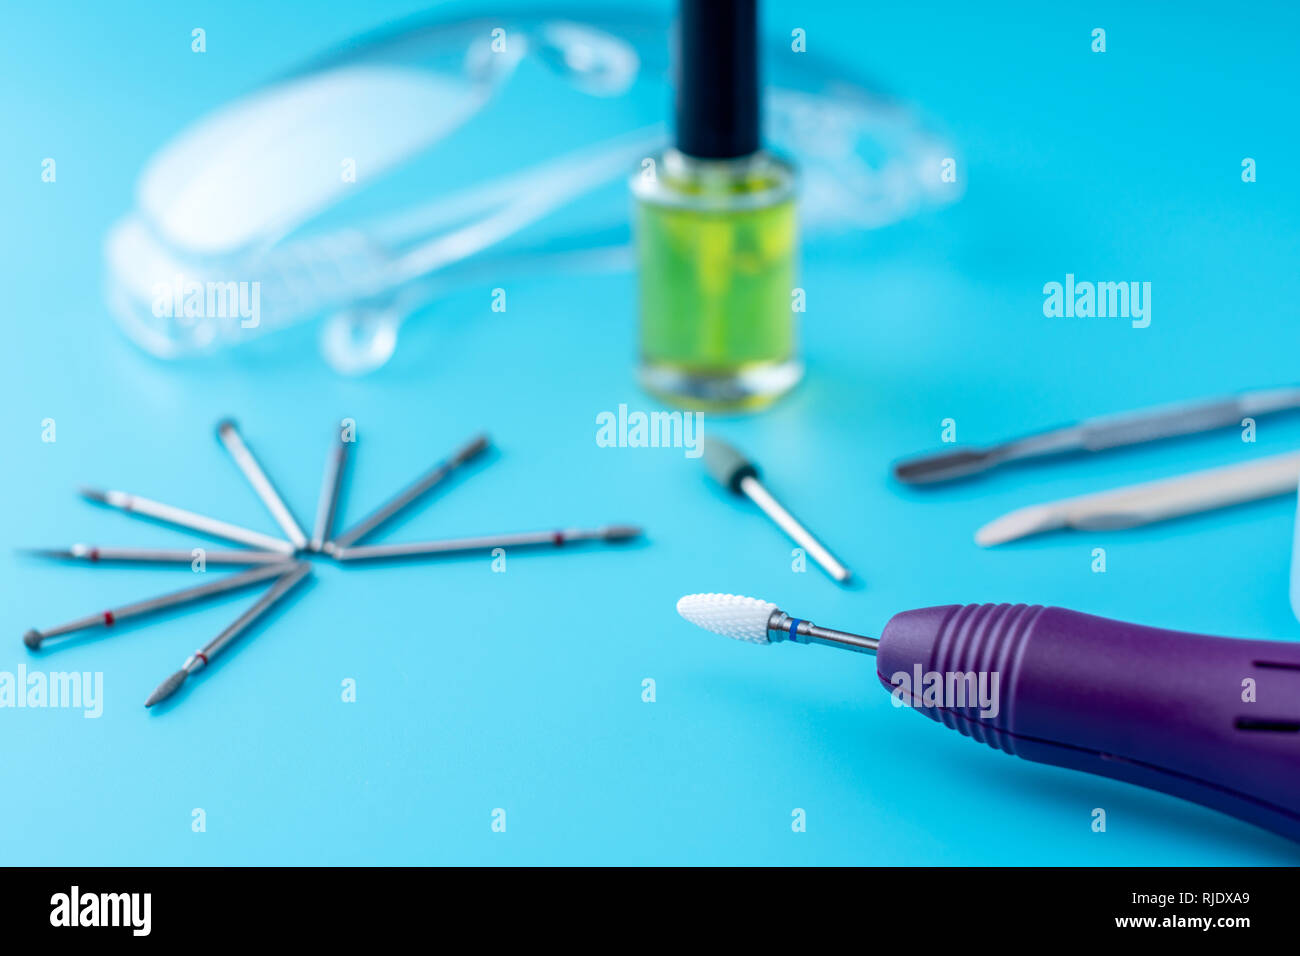 A set of cosmetic tools for professional hardware manicure on a blue background. Milling cutter, glasses, cuticle cleanser, top view - Stock Image